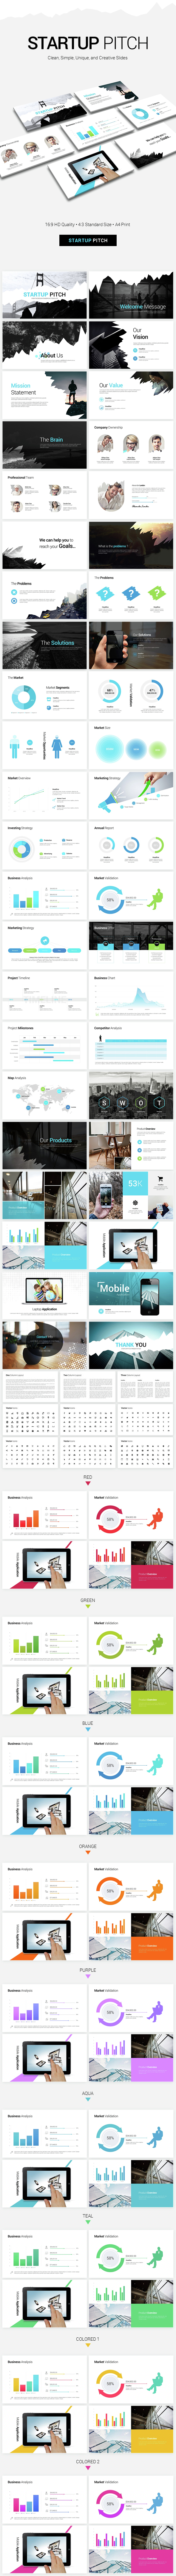 Startup Pitch Presentation - Pitch Deck PowerPoint Templates